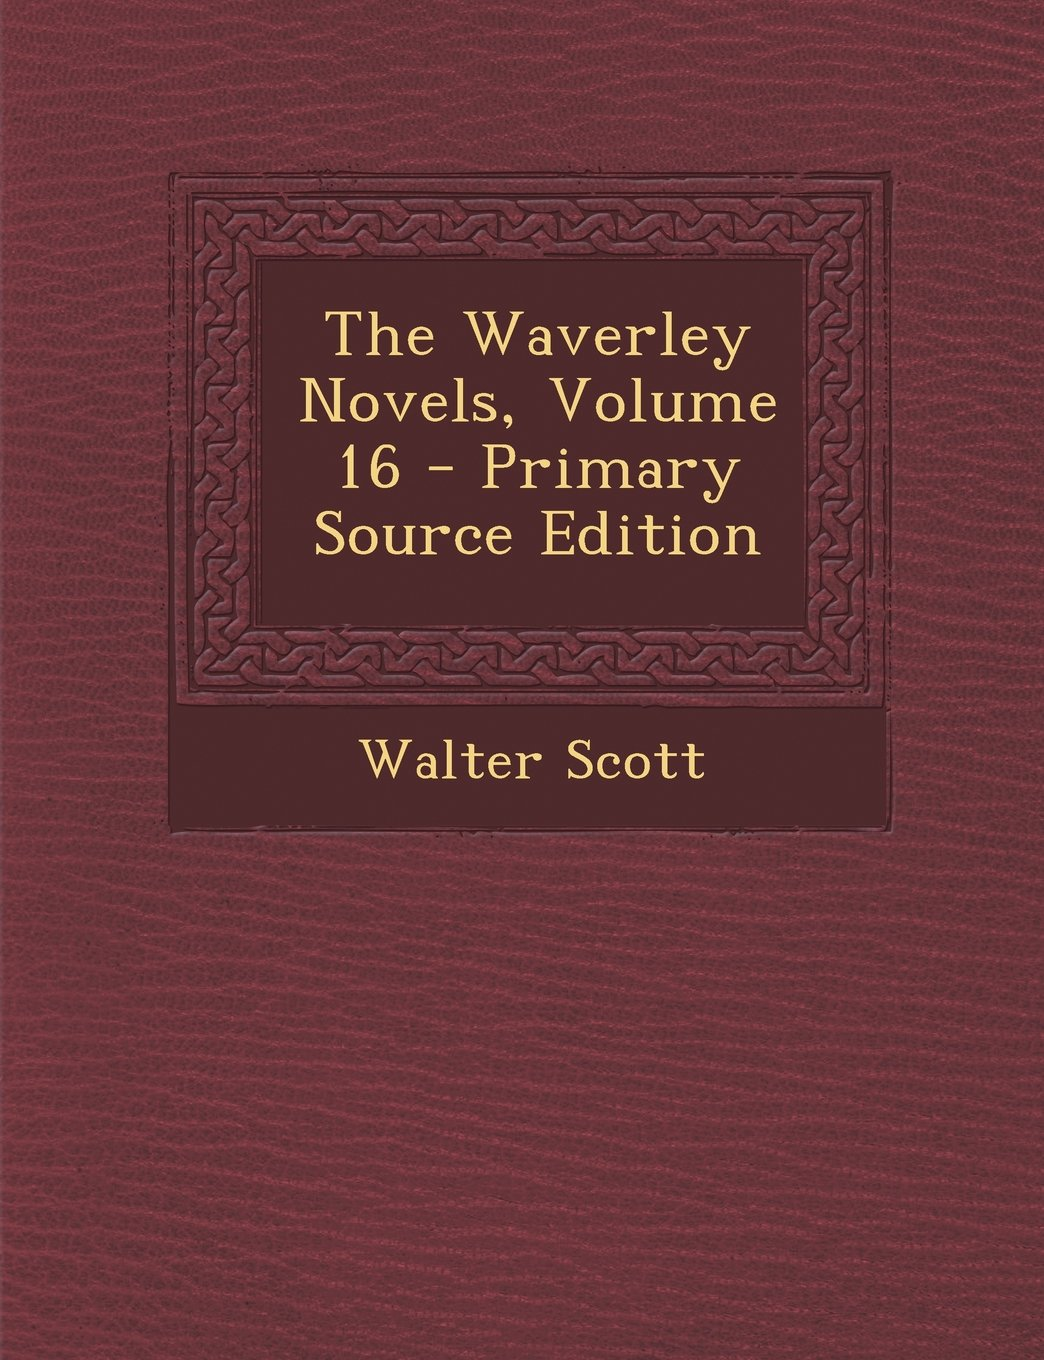 The Waverley Novels, Volume 16 - Primary Source Edition pdf